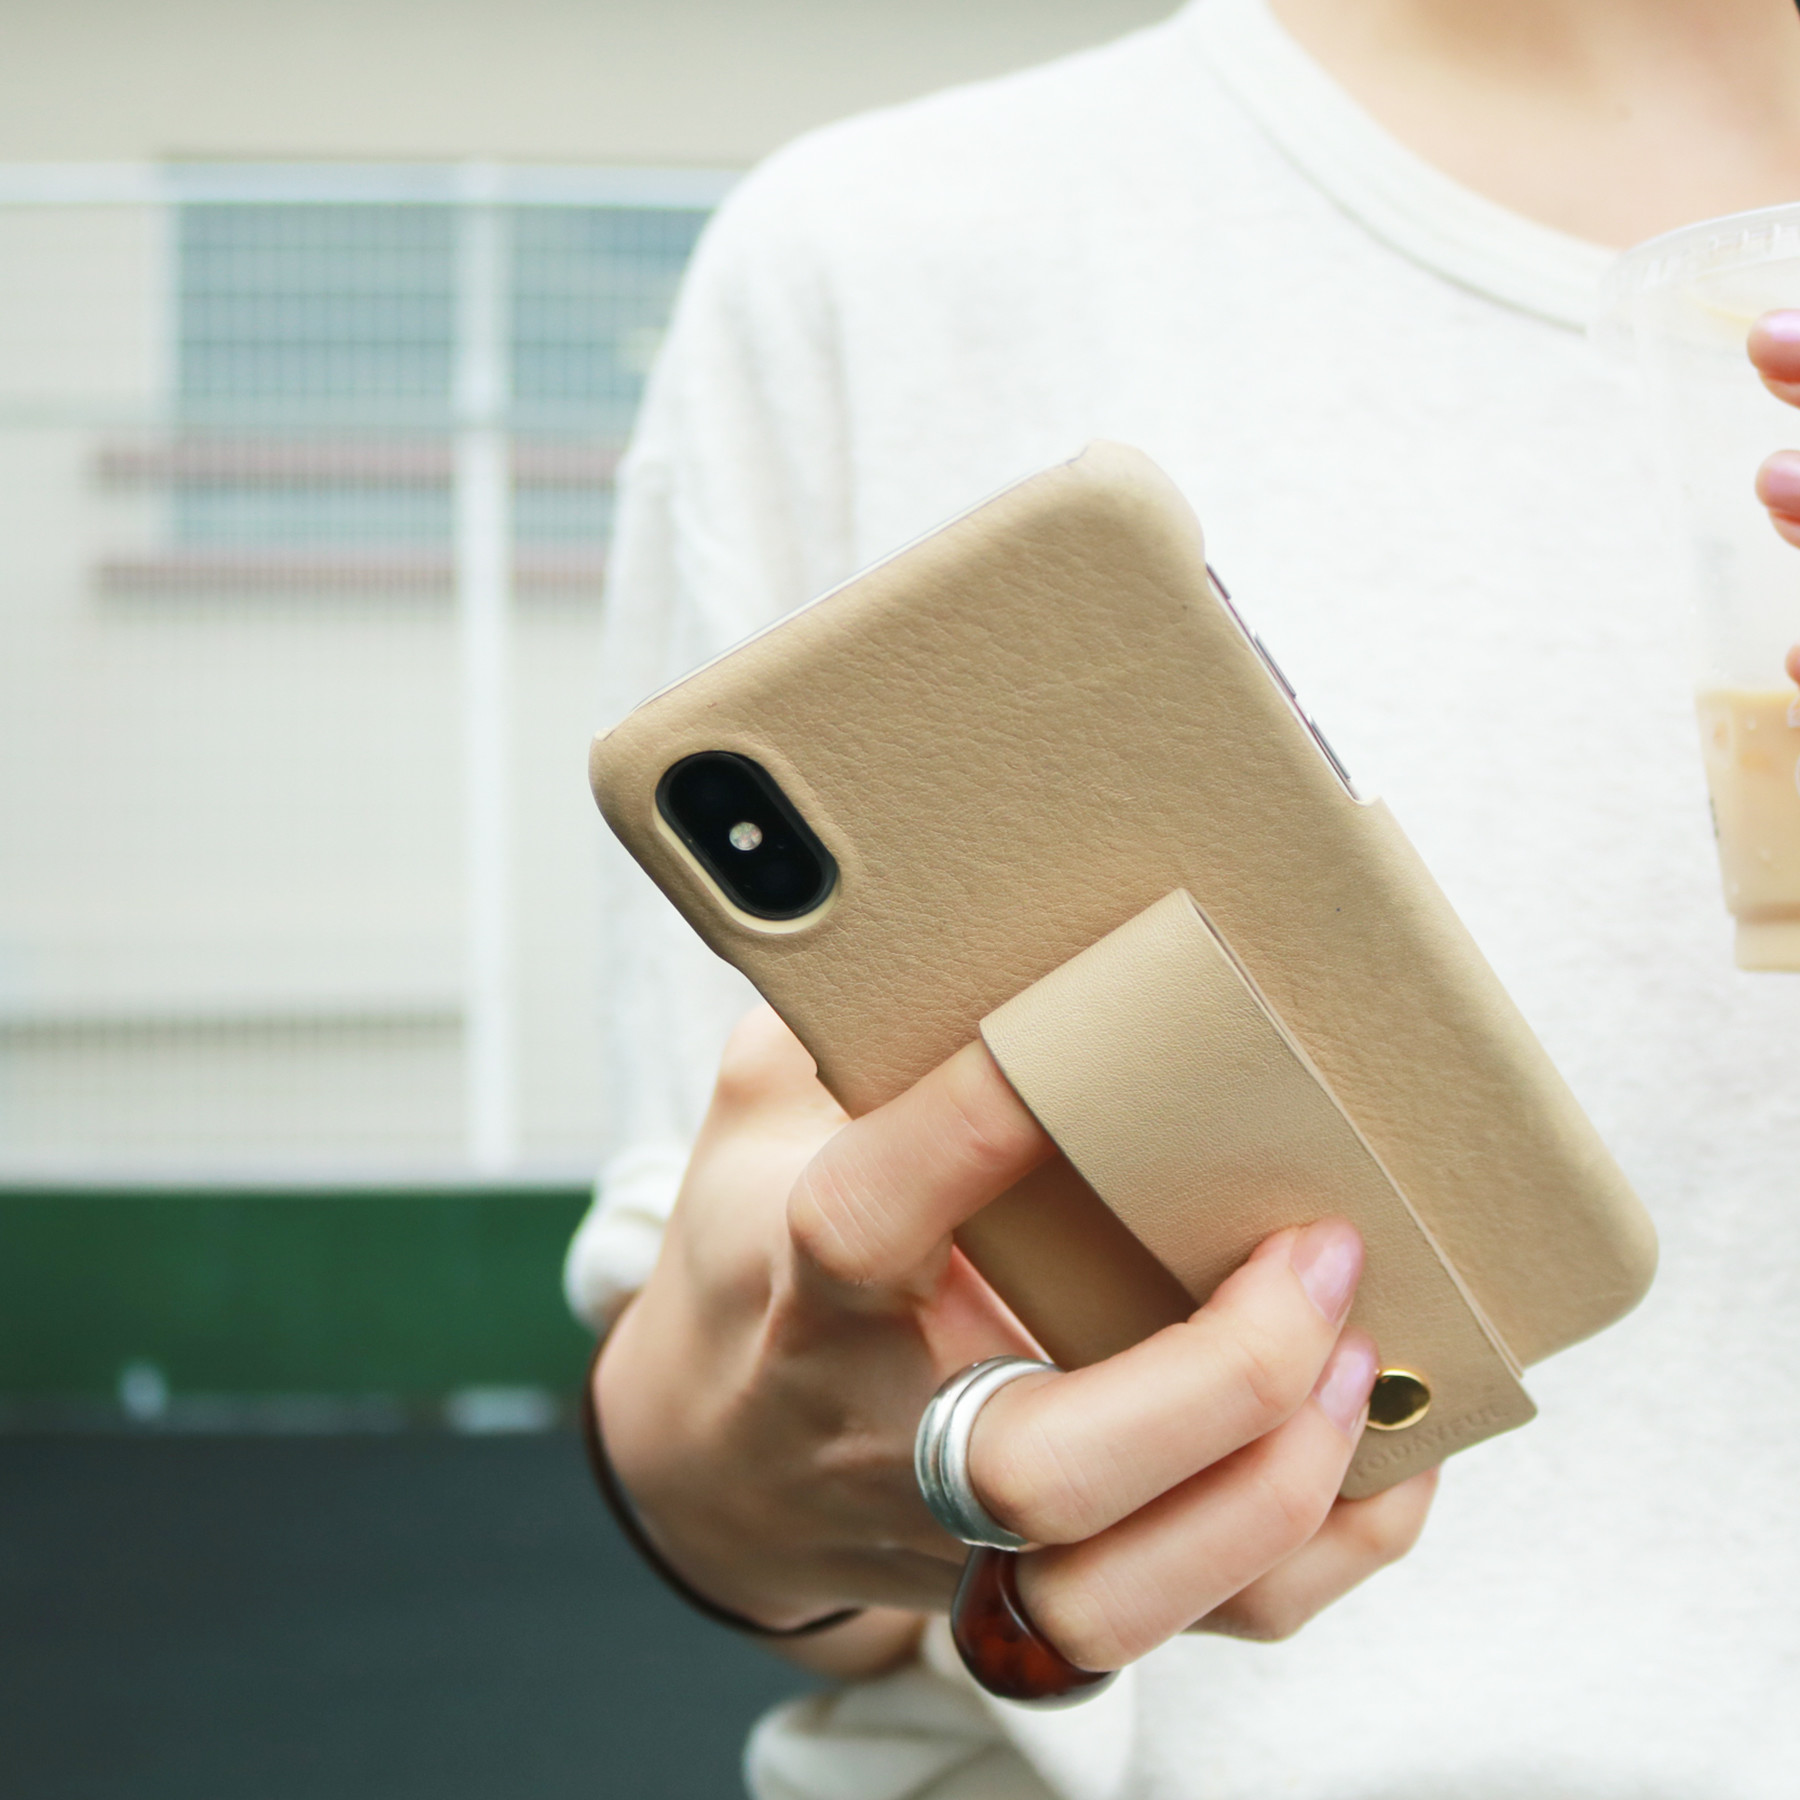 Handgrip iPhone Case